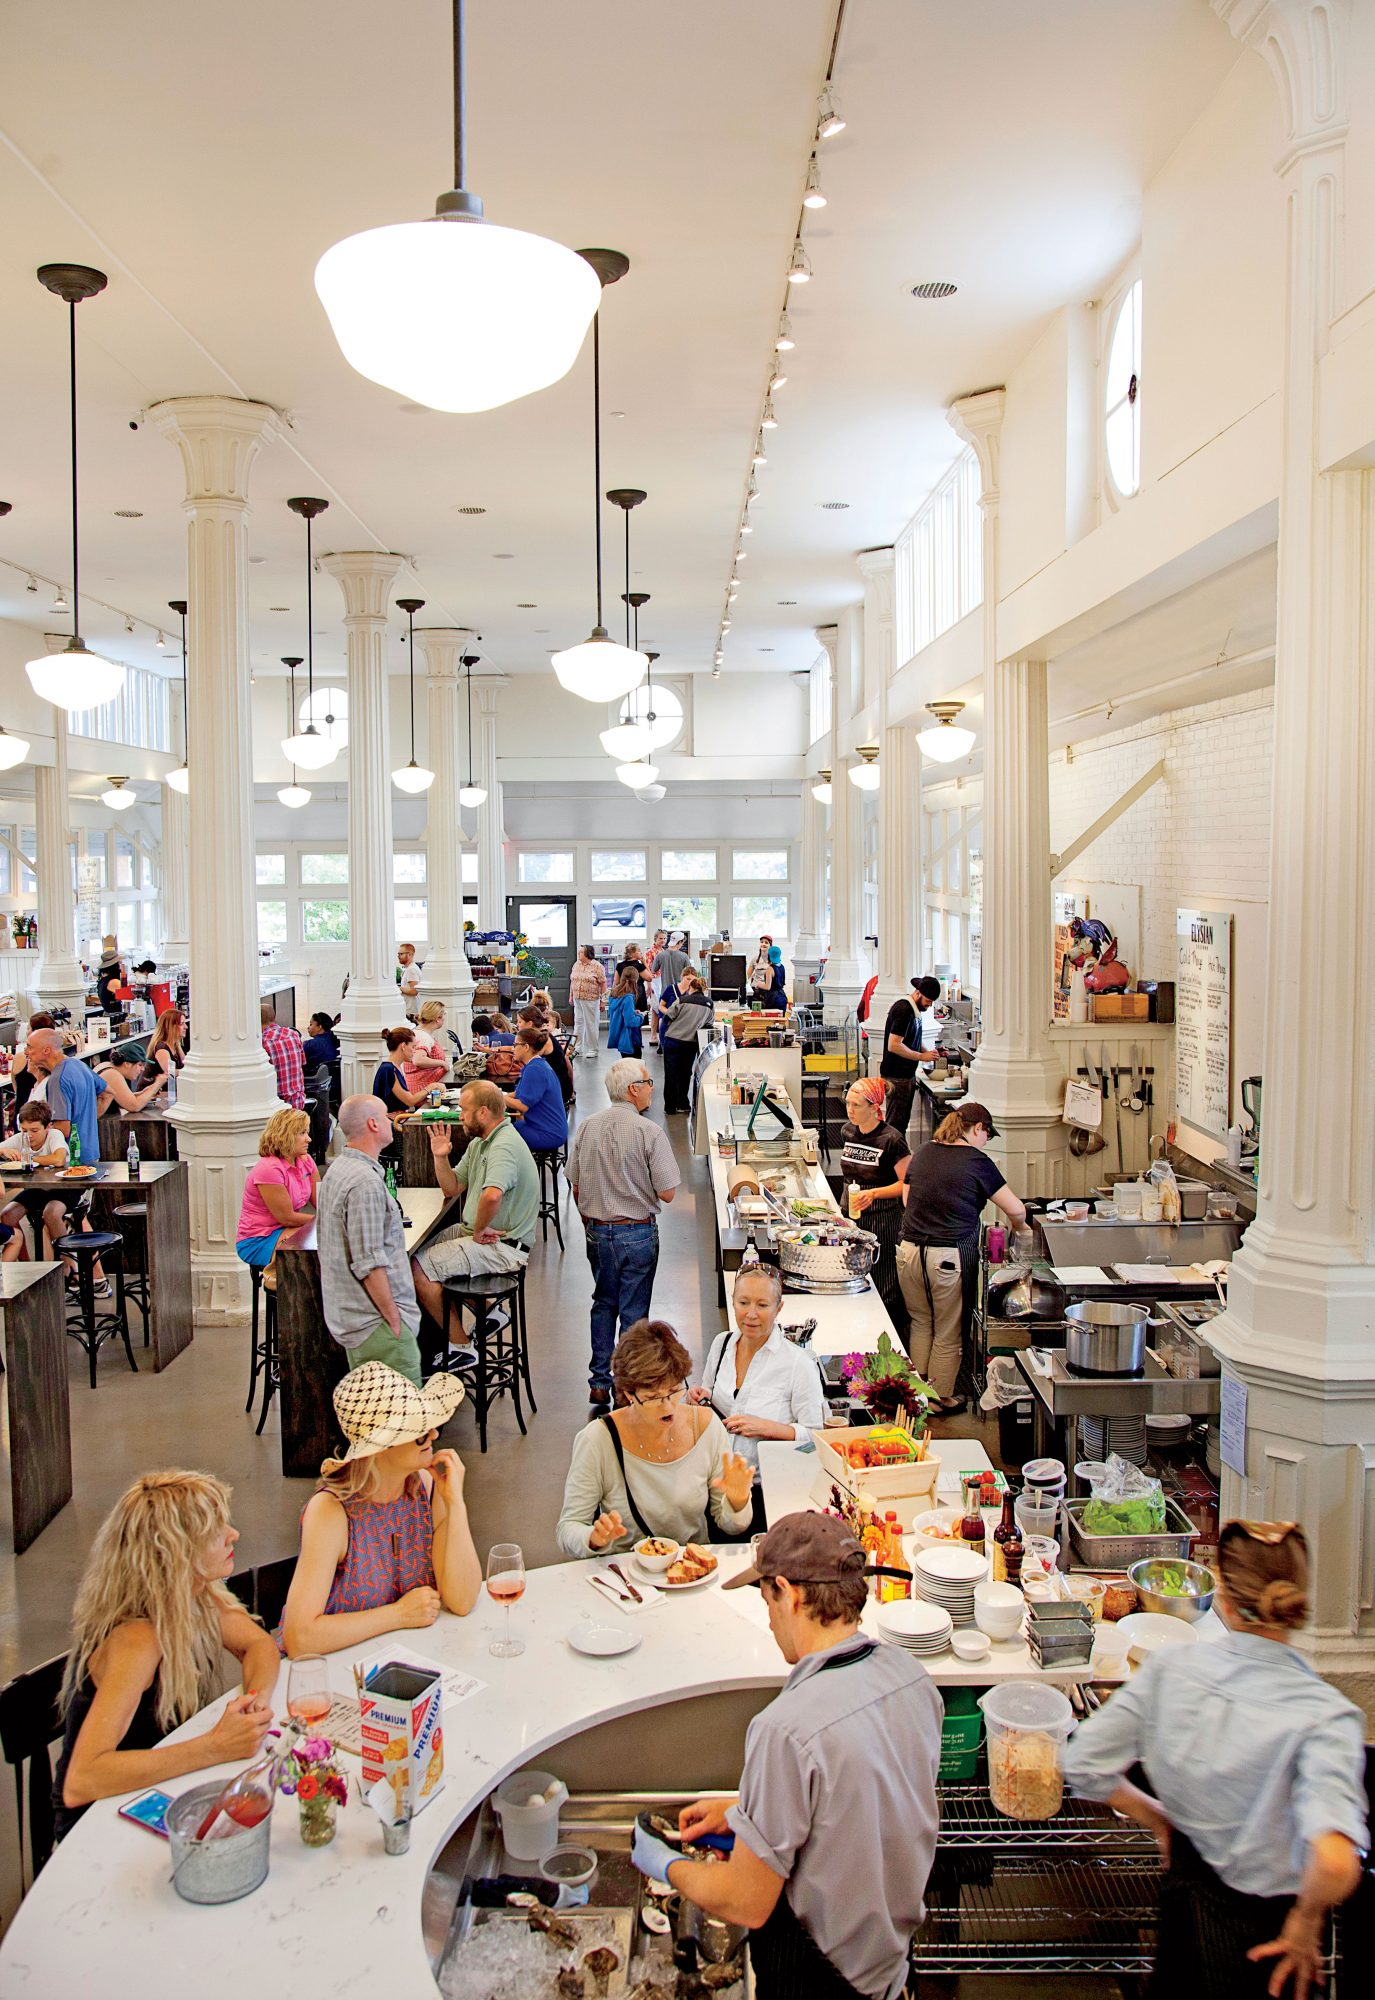 St. Roch Market Food Hall in New Orleans